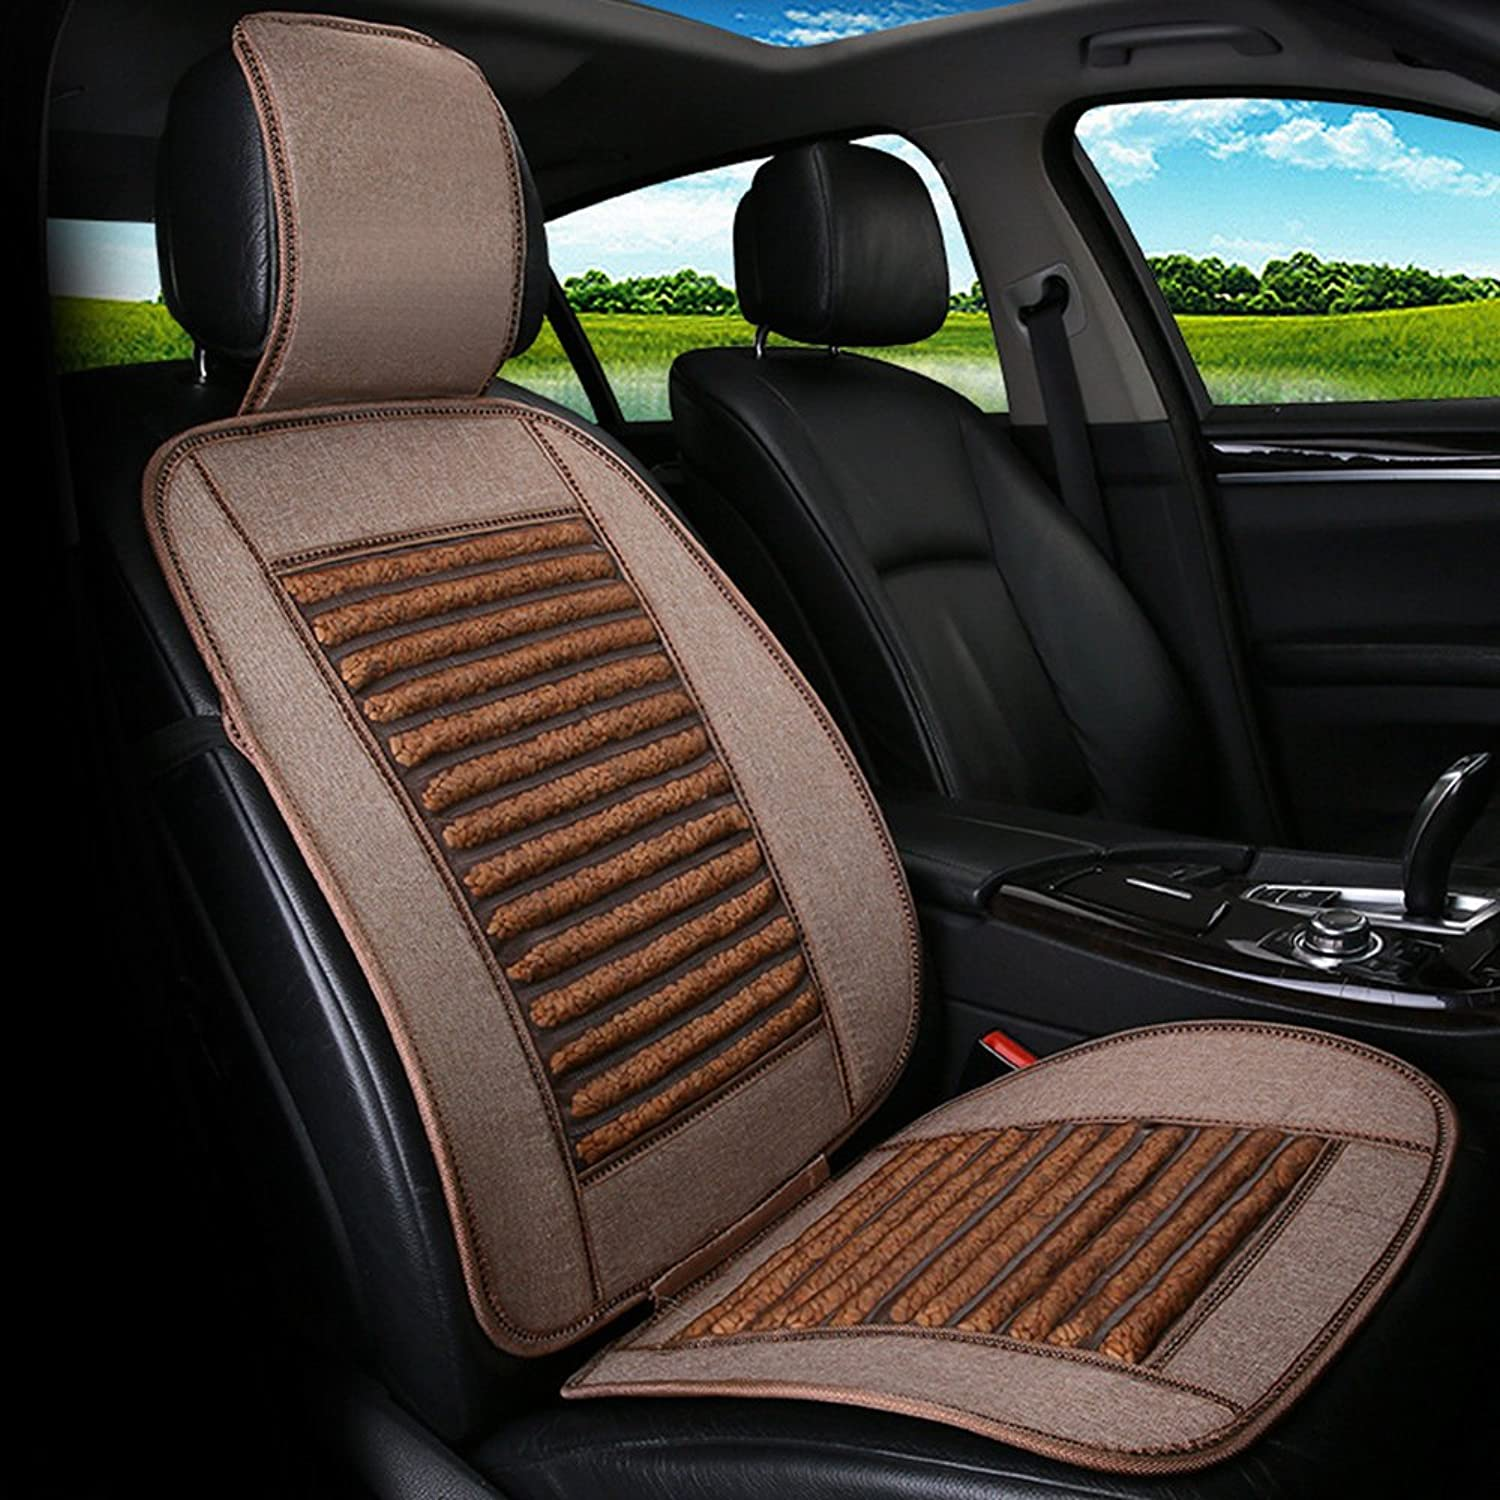 Massage Car Seat Handmade Wooden Beads Or Hawthorn Seed Cool Pads Single Ventilation,C